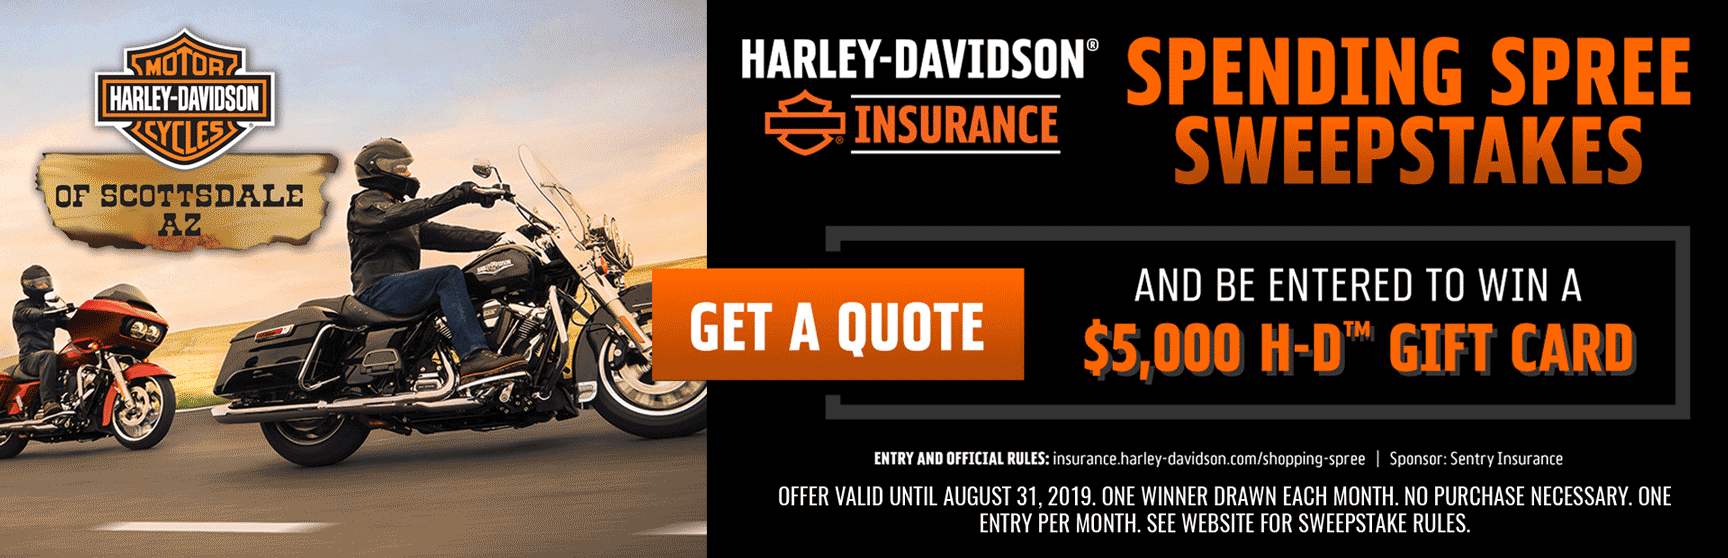 H-D Spending Spree Sweepstakes